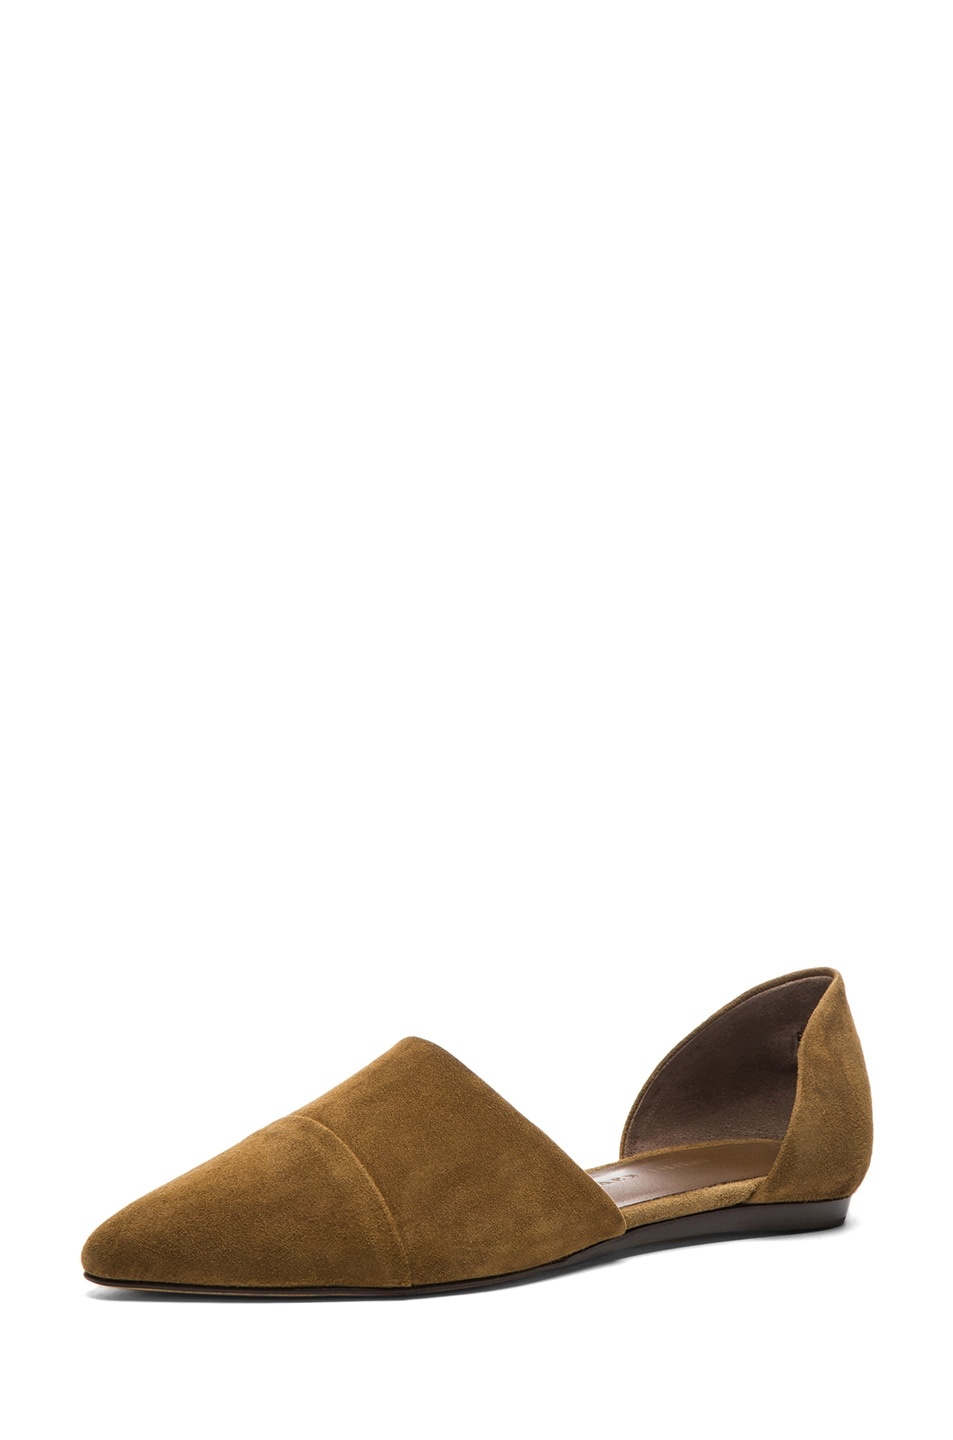 Image 2 of Jenni Kayne D'orsay Suede Flat in Bark